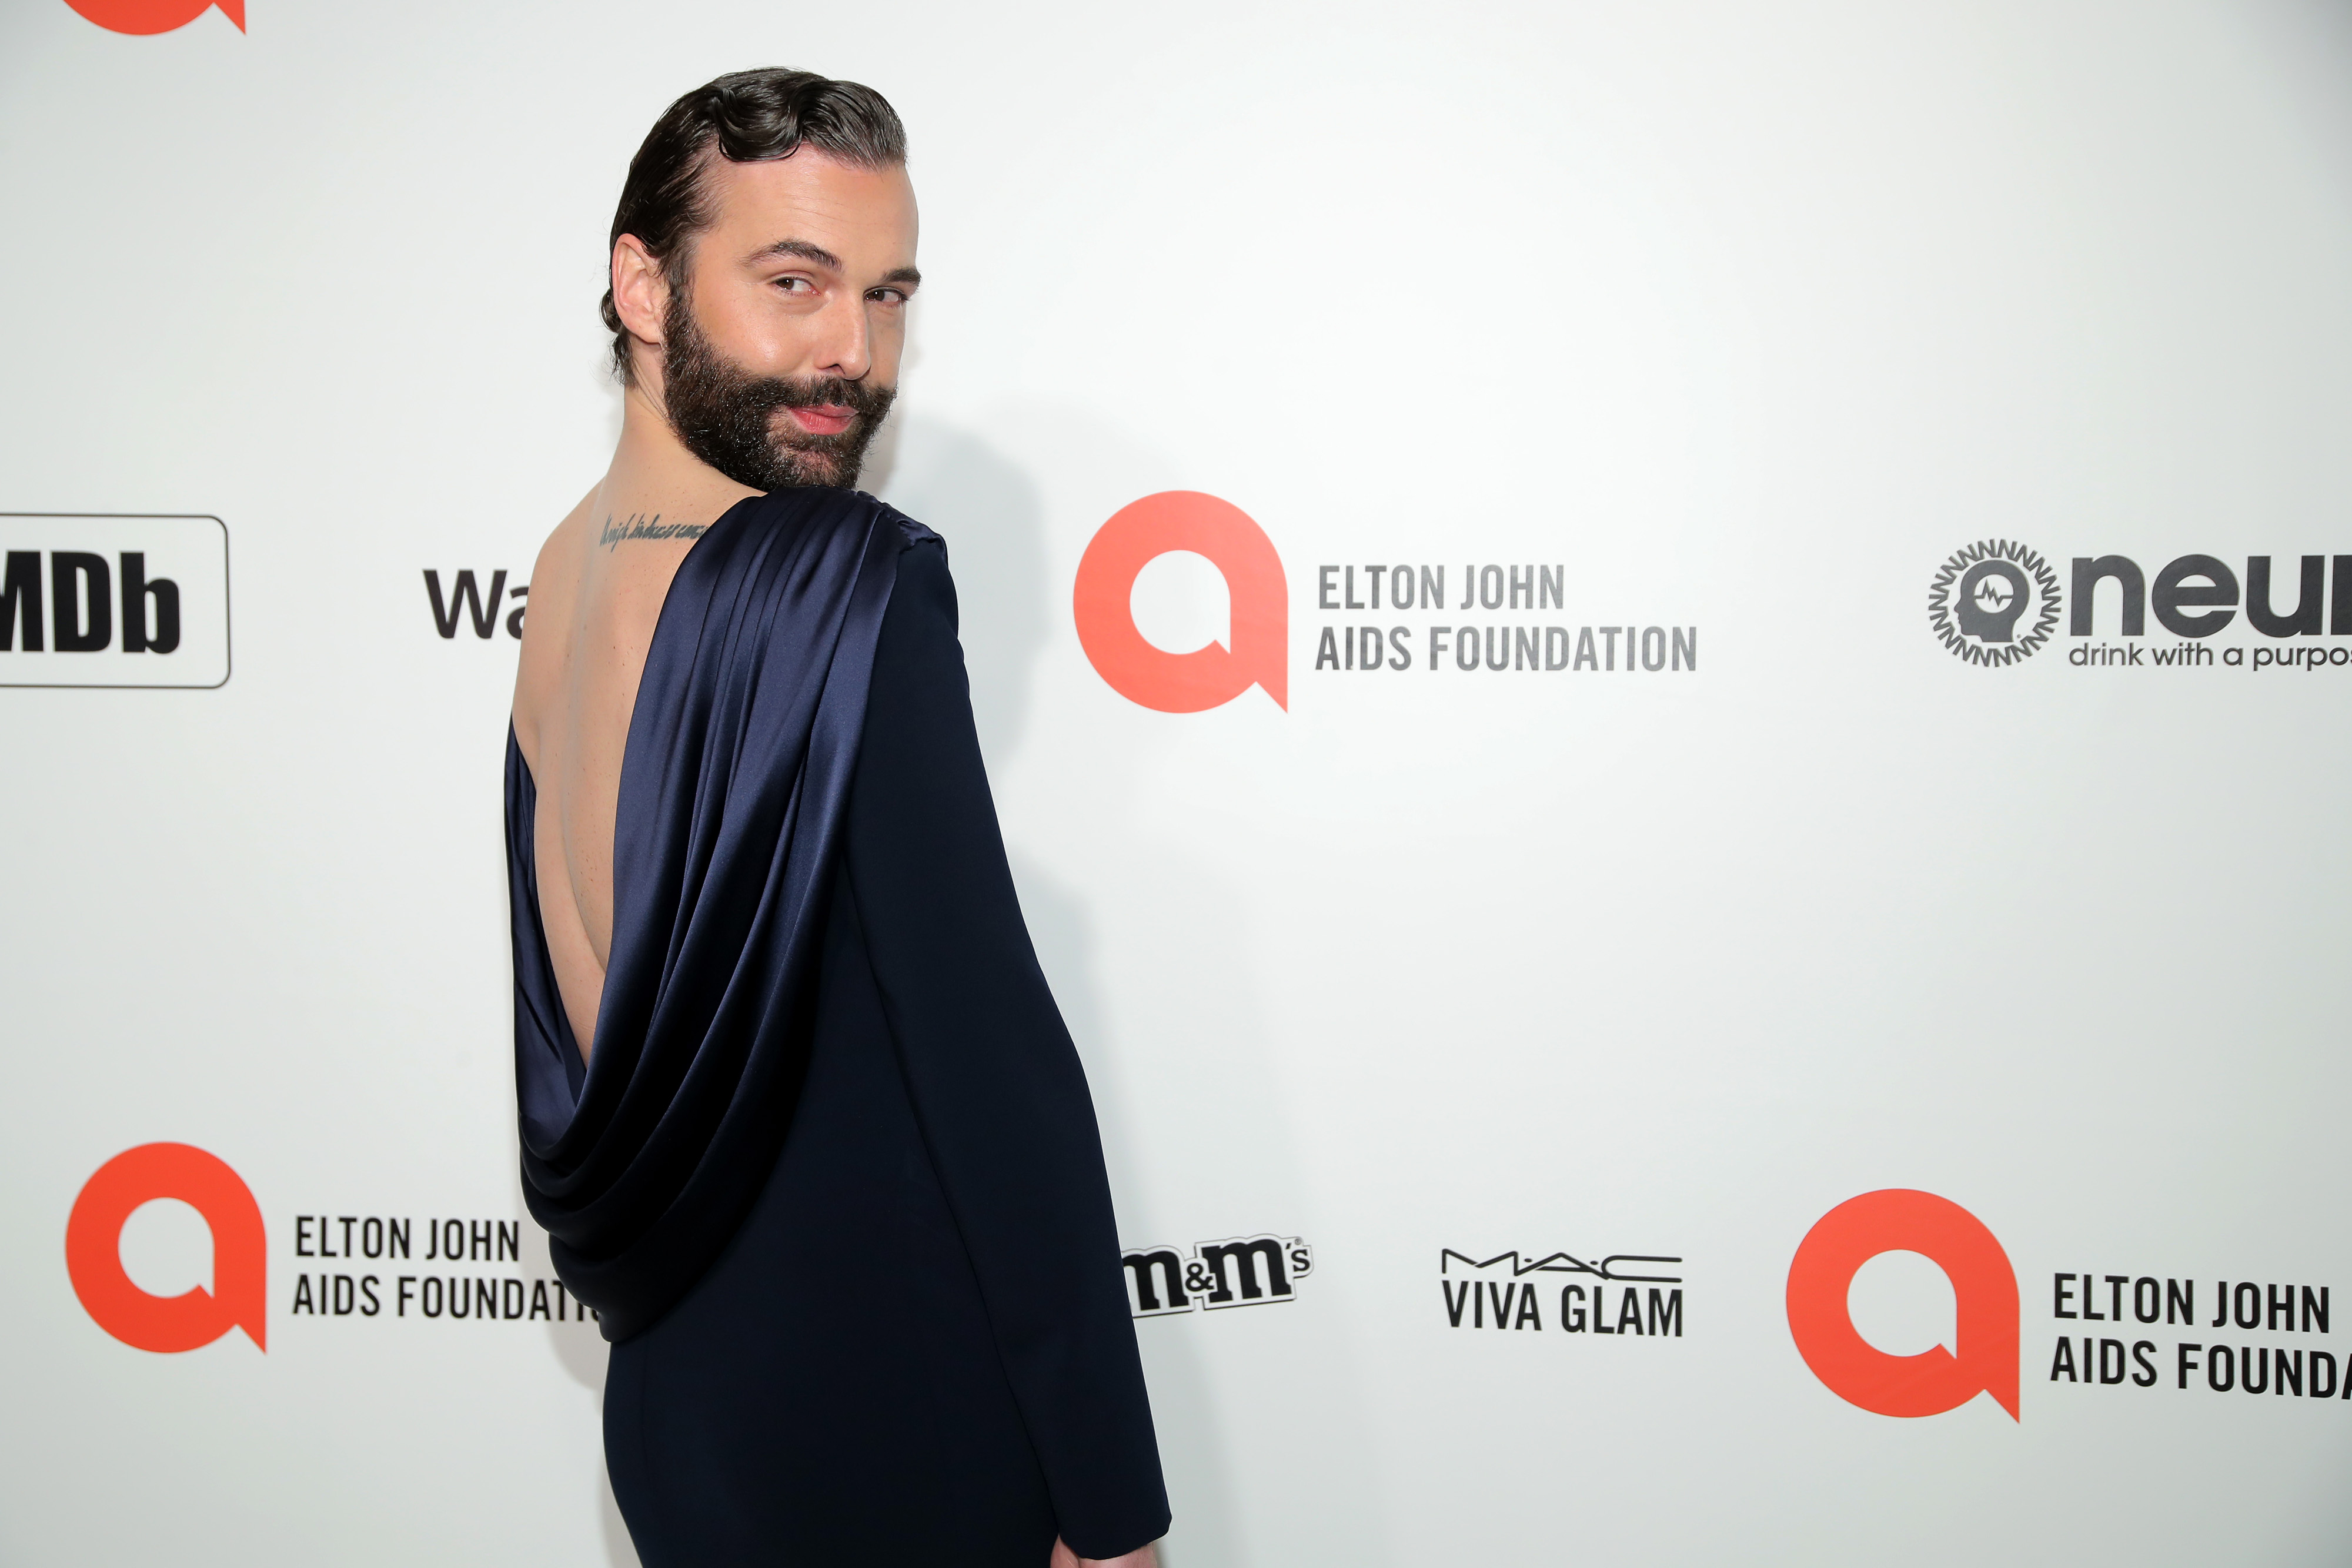 WEST HOLLYWOOD, CALIFORNIA - FEBRUARY 09: Jonathan Van Ness attends the 28th Annual Elton John AIDS Foundation Academy Awards Viewing Party sponsored by IMDb, Neuro Drinks and Walmart on February 09, 2020 in West Hollywood, California. (Photo by Jemal Countess/Getty Images)